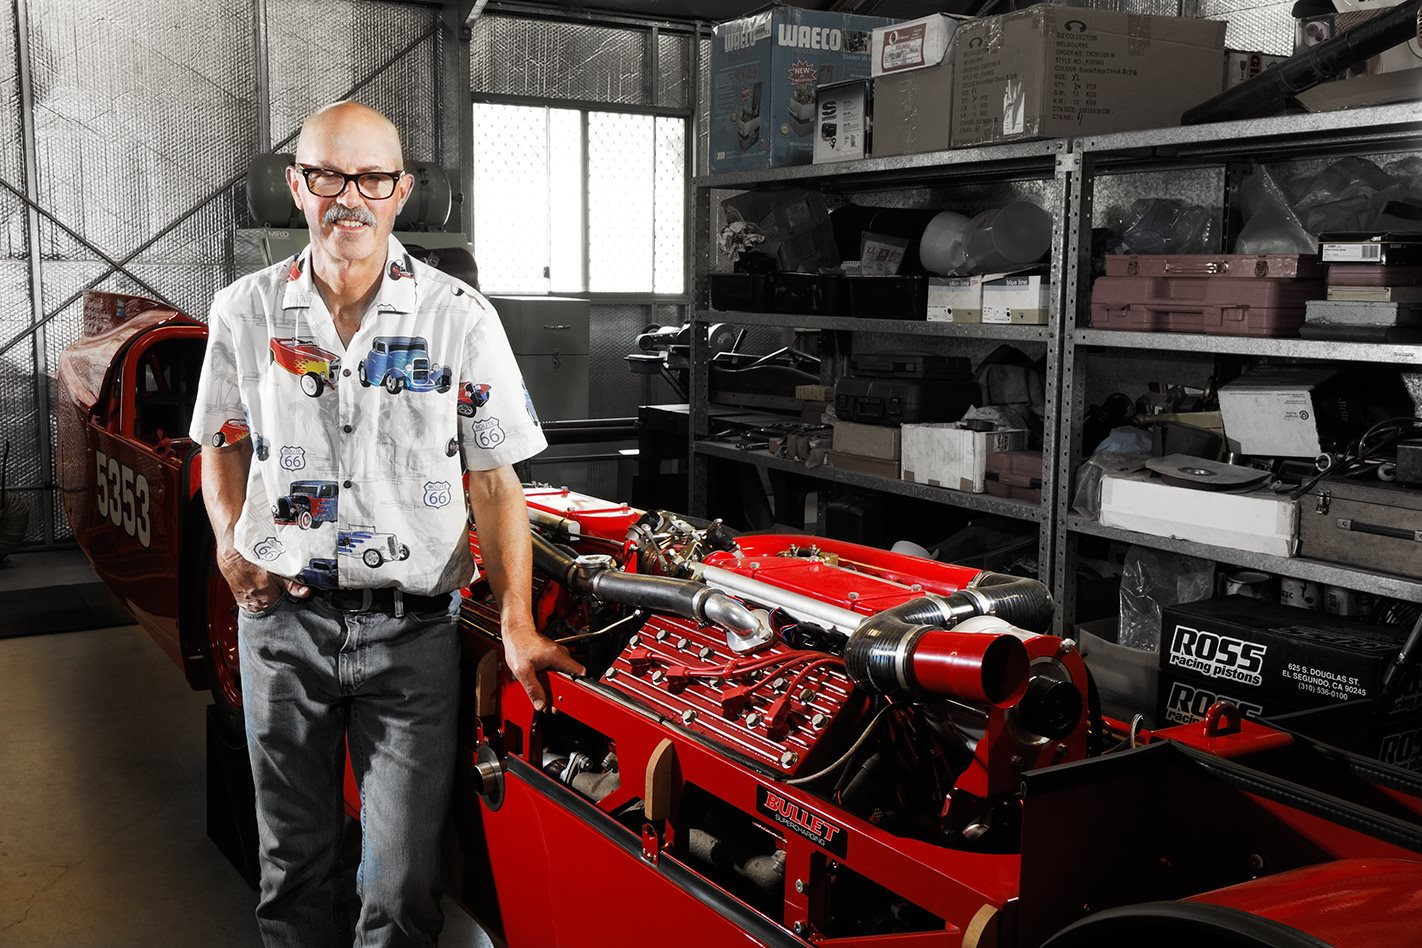 FLATHEAD V8 FANATIC AND DLRA LEGEND MIKE DAVIDSON - INTERVIEW